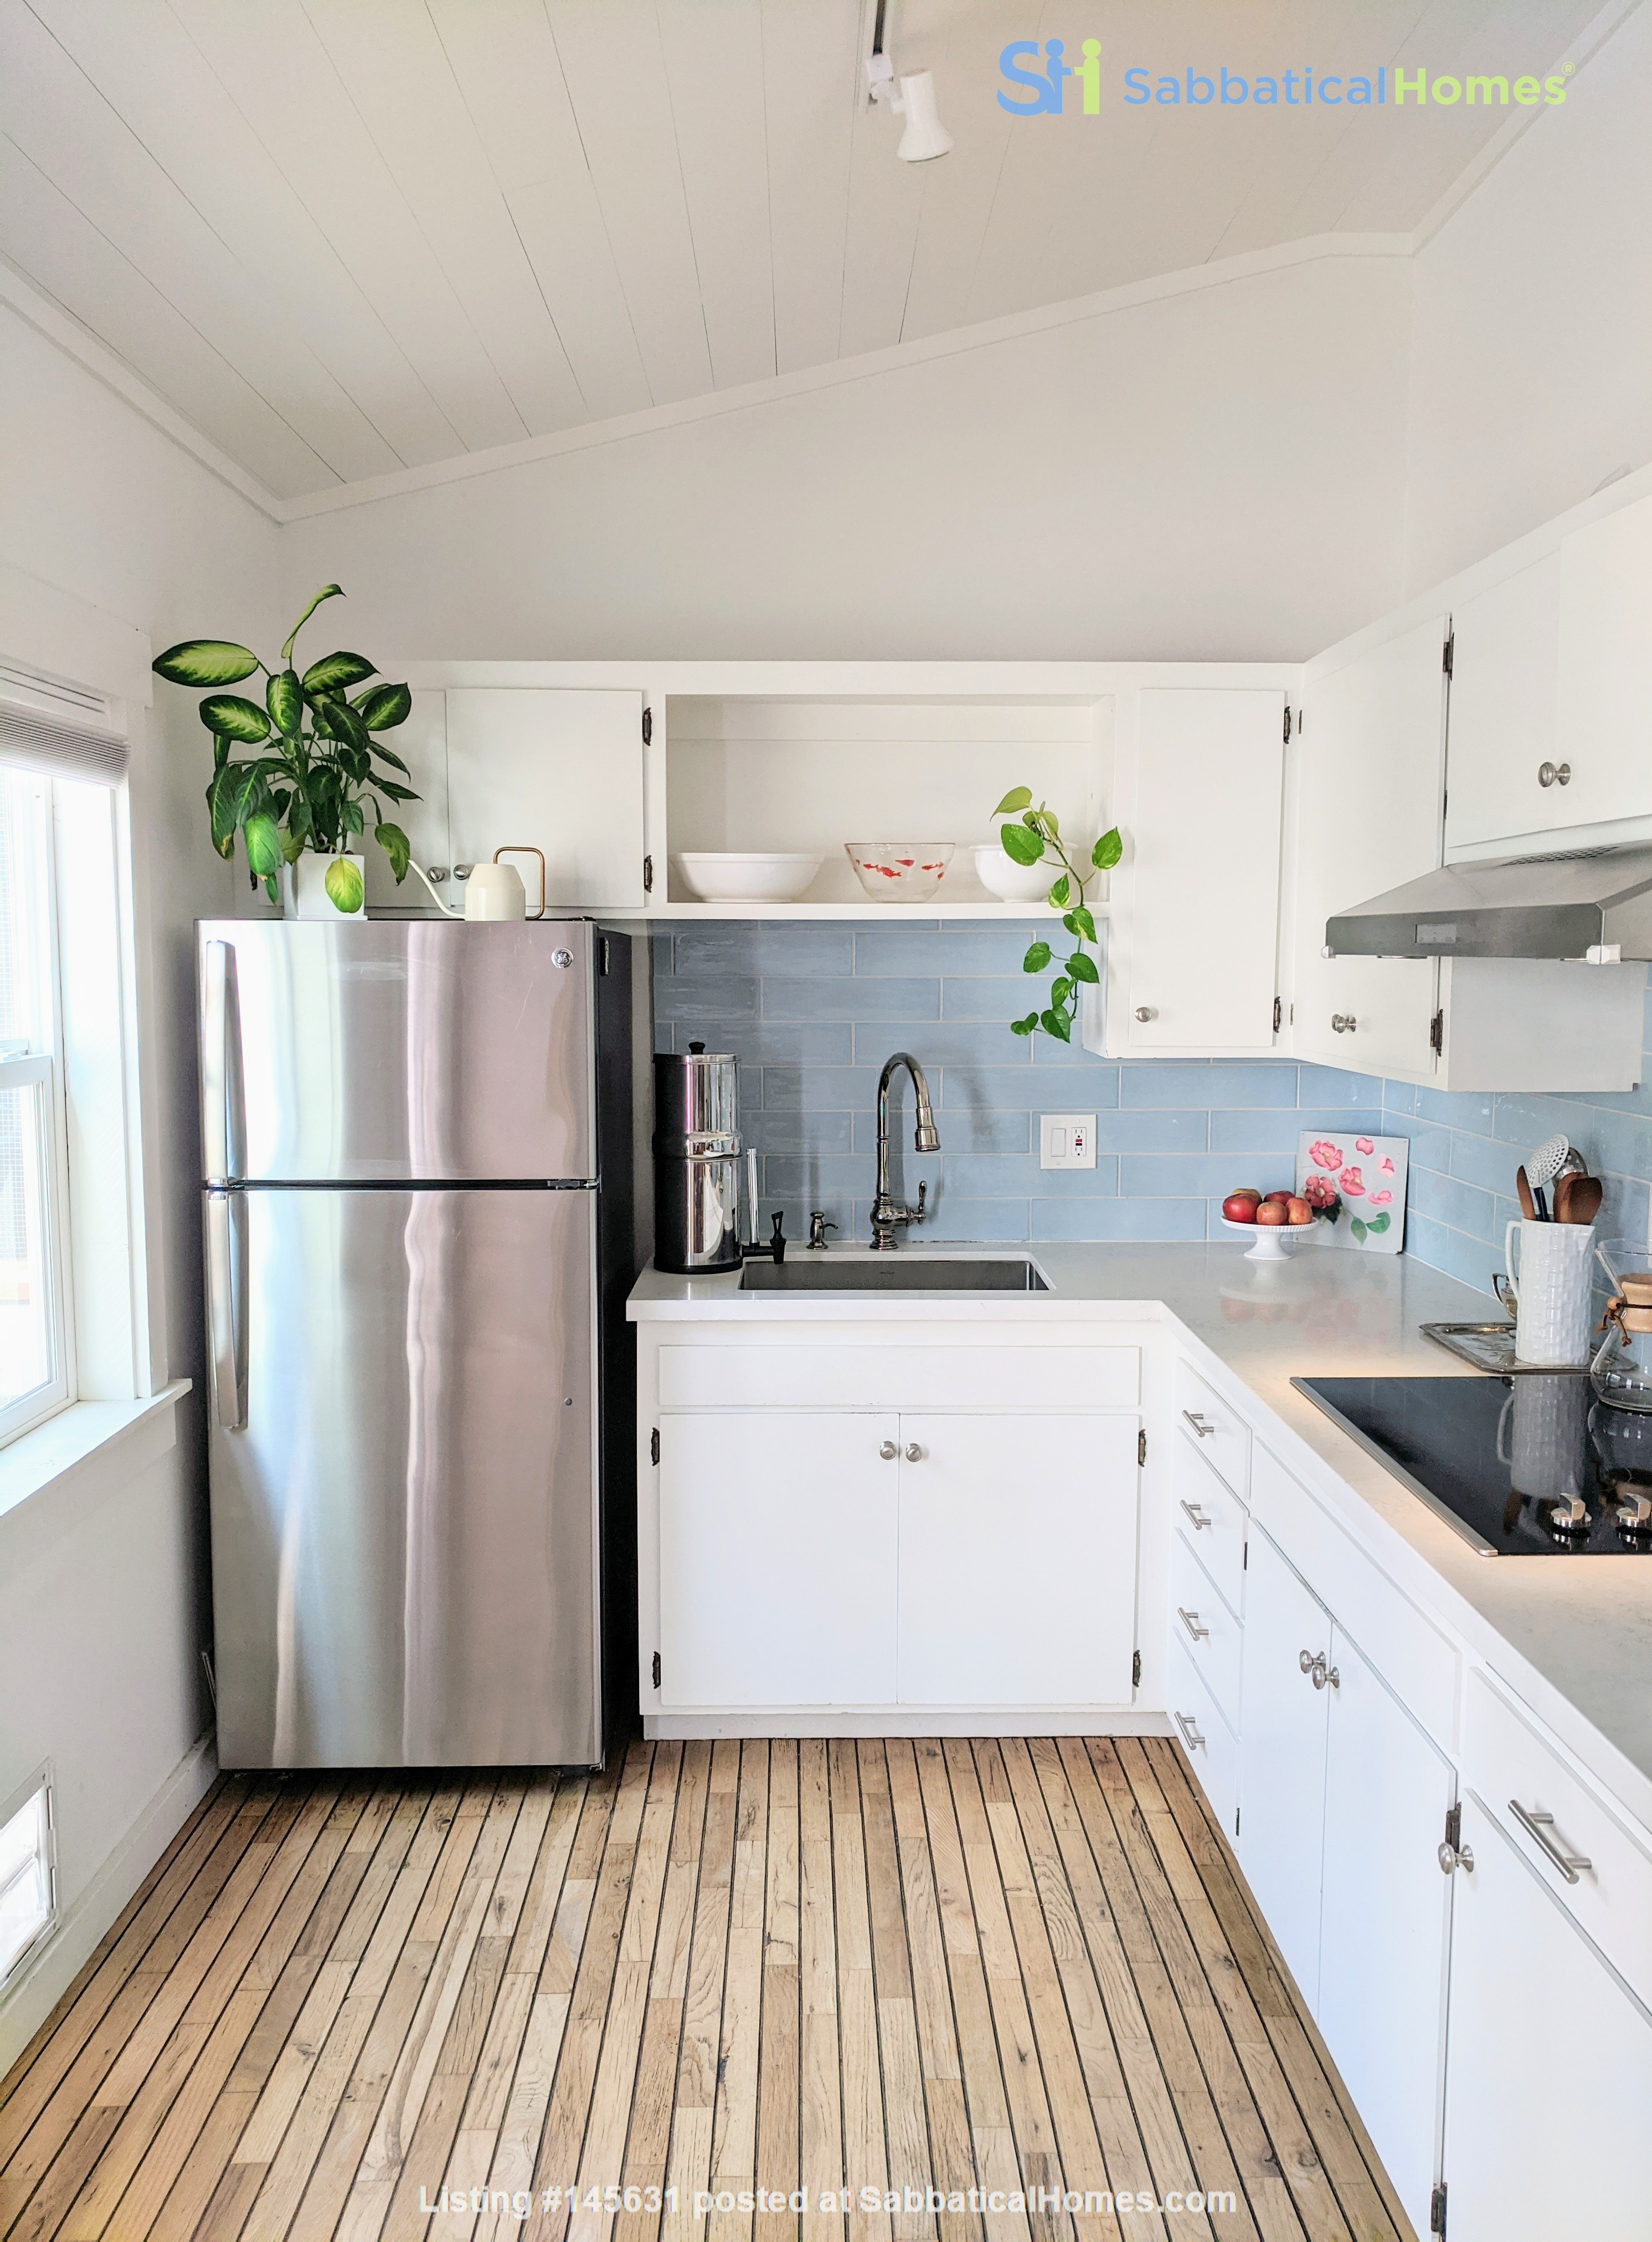 CHARMING PRIVATE COTTAGE 1 BR/1 BA + Office/studio space (720sft) Home Rental in San Rafael, California, United States 3